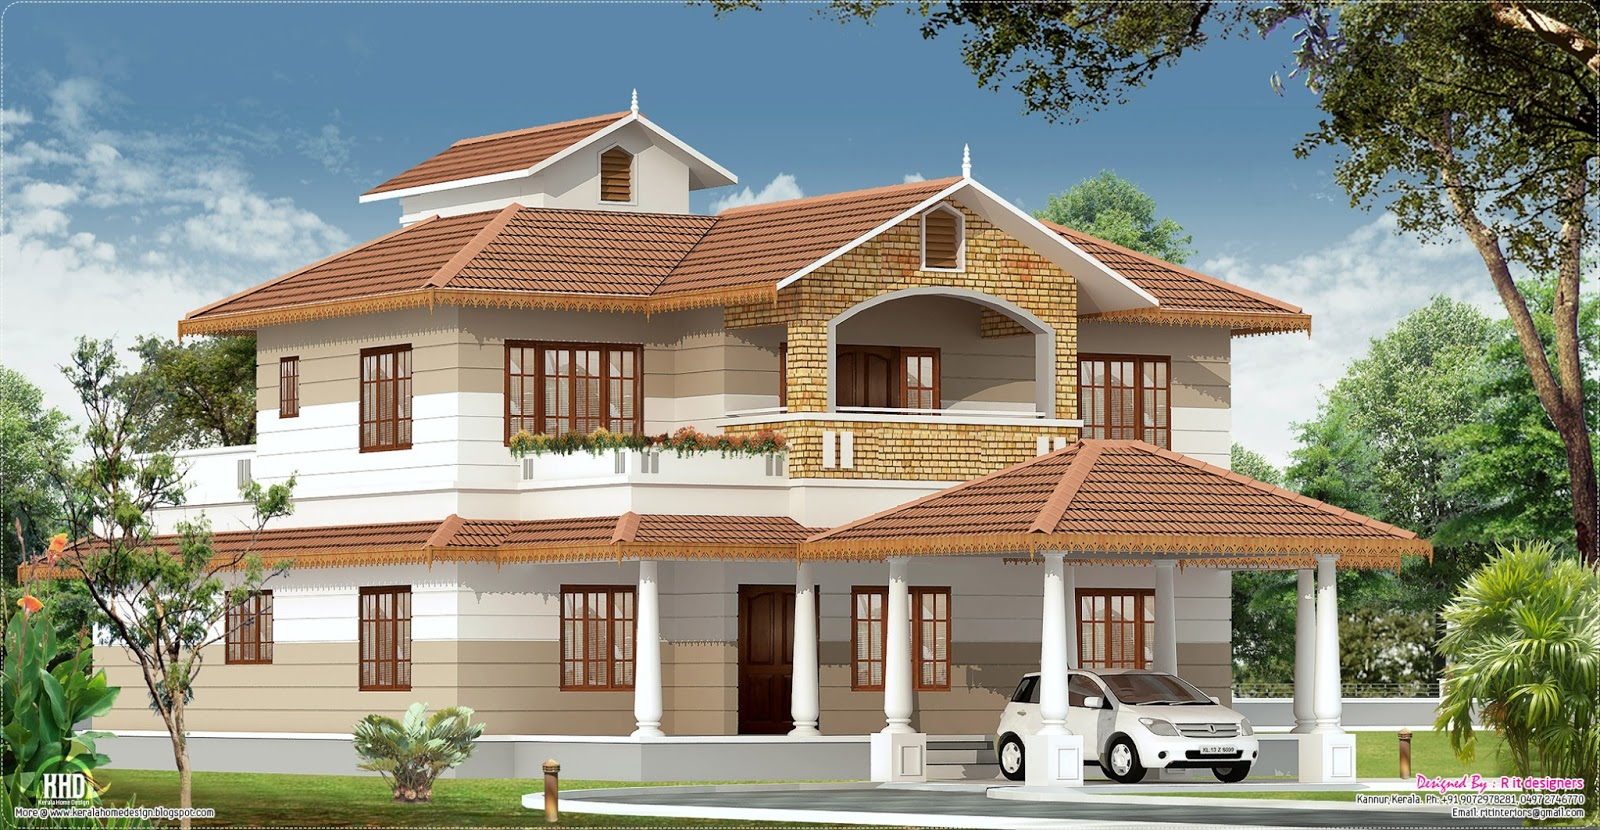 ... kerala style home interior designs by r it designers kannur kerala